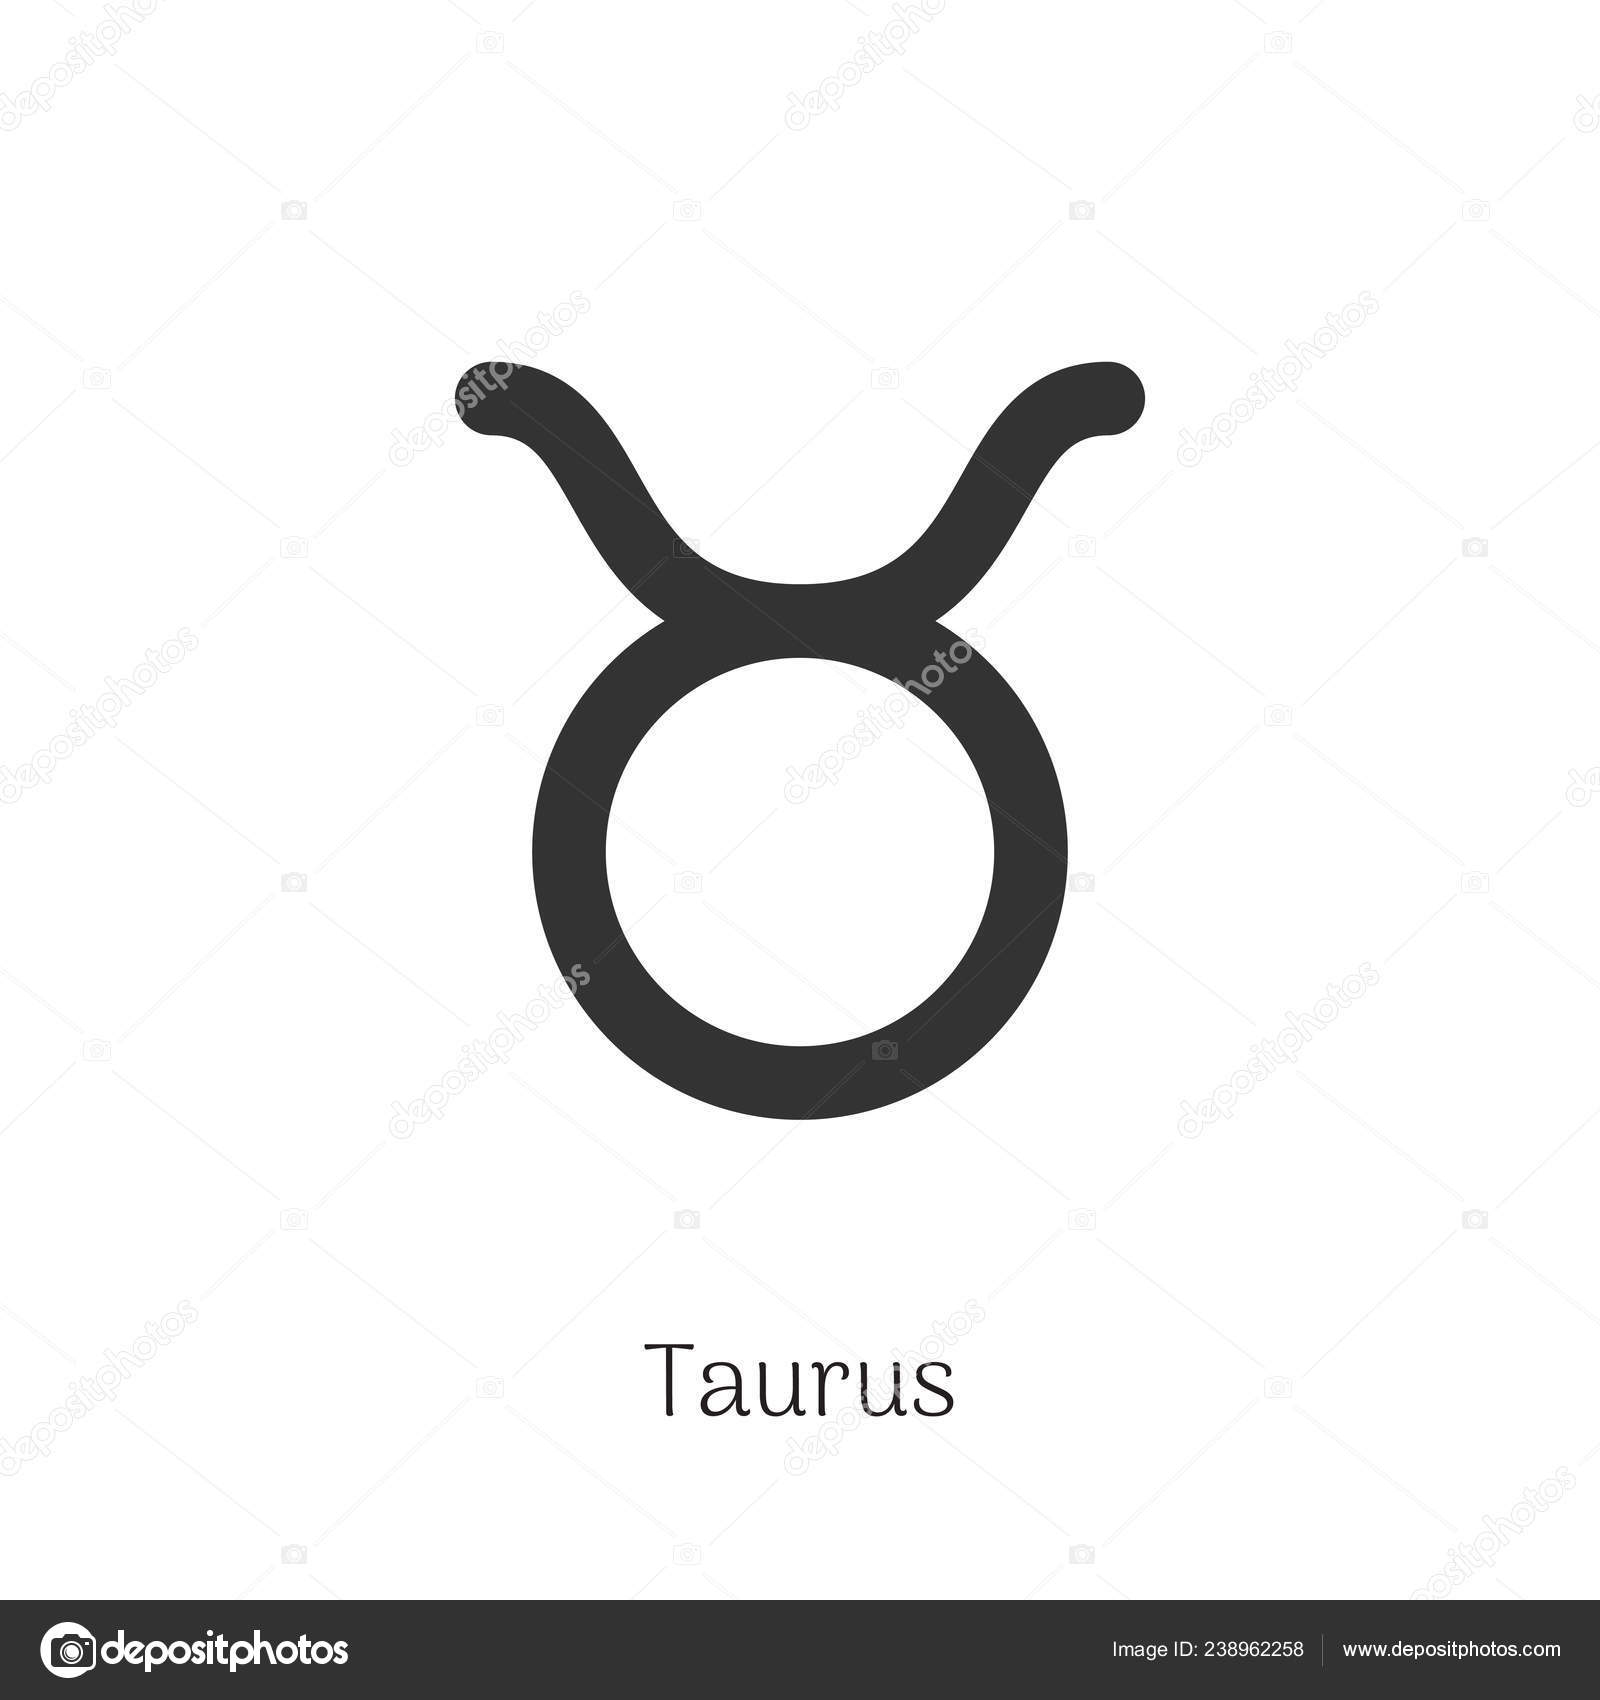 taurus zodiac sign isolated